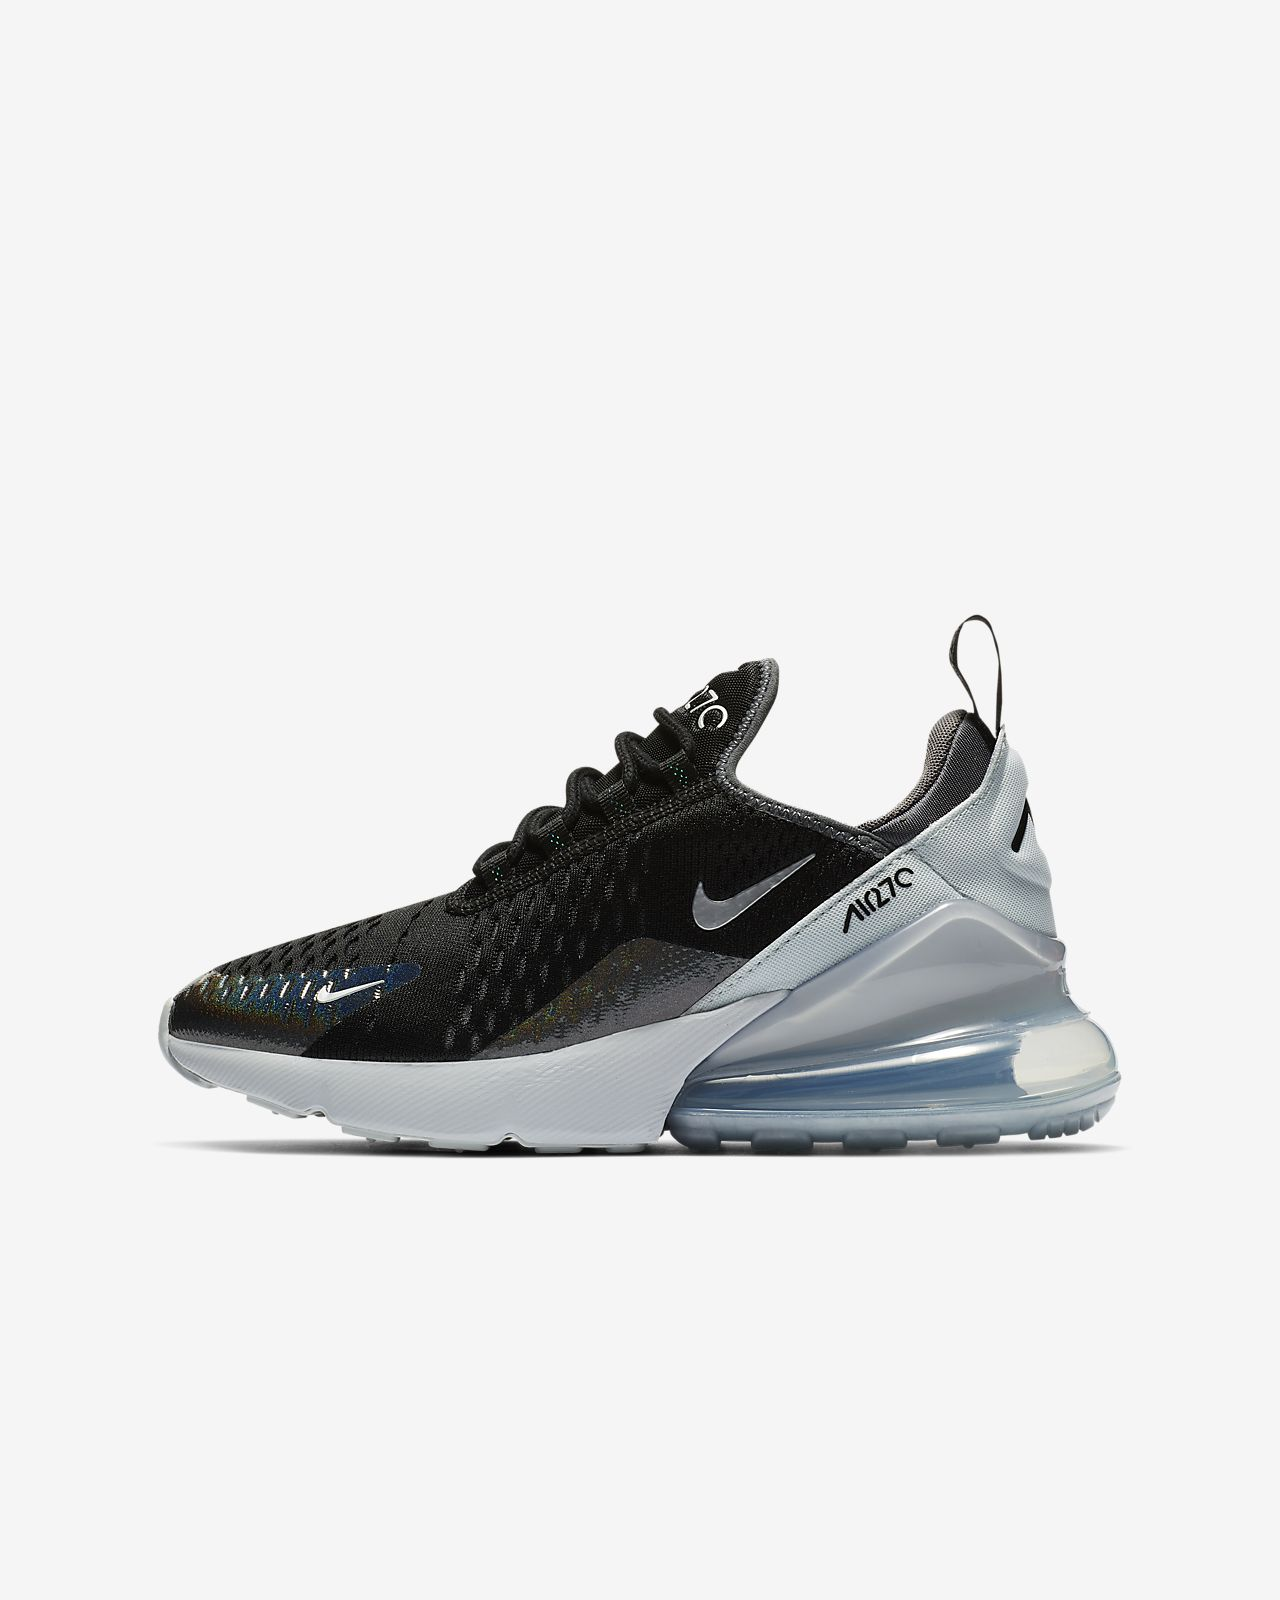 best service ccded bb28f ... Sko Nike Air Max 270 Y2K för ungdom